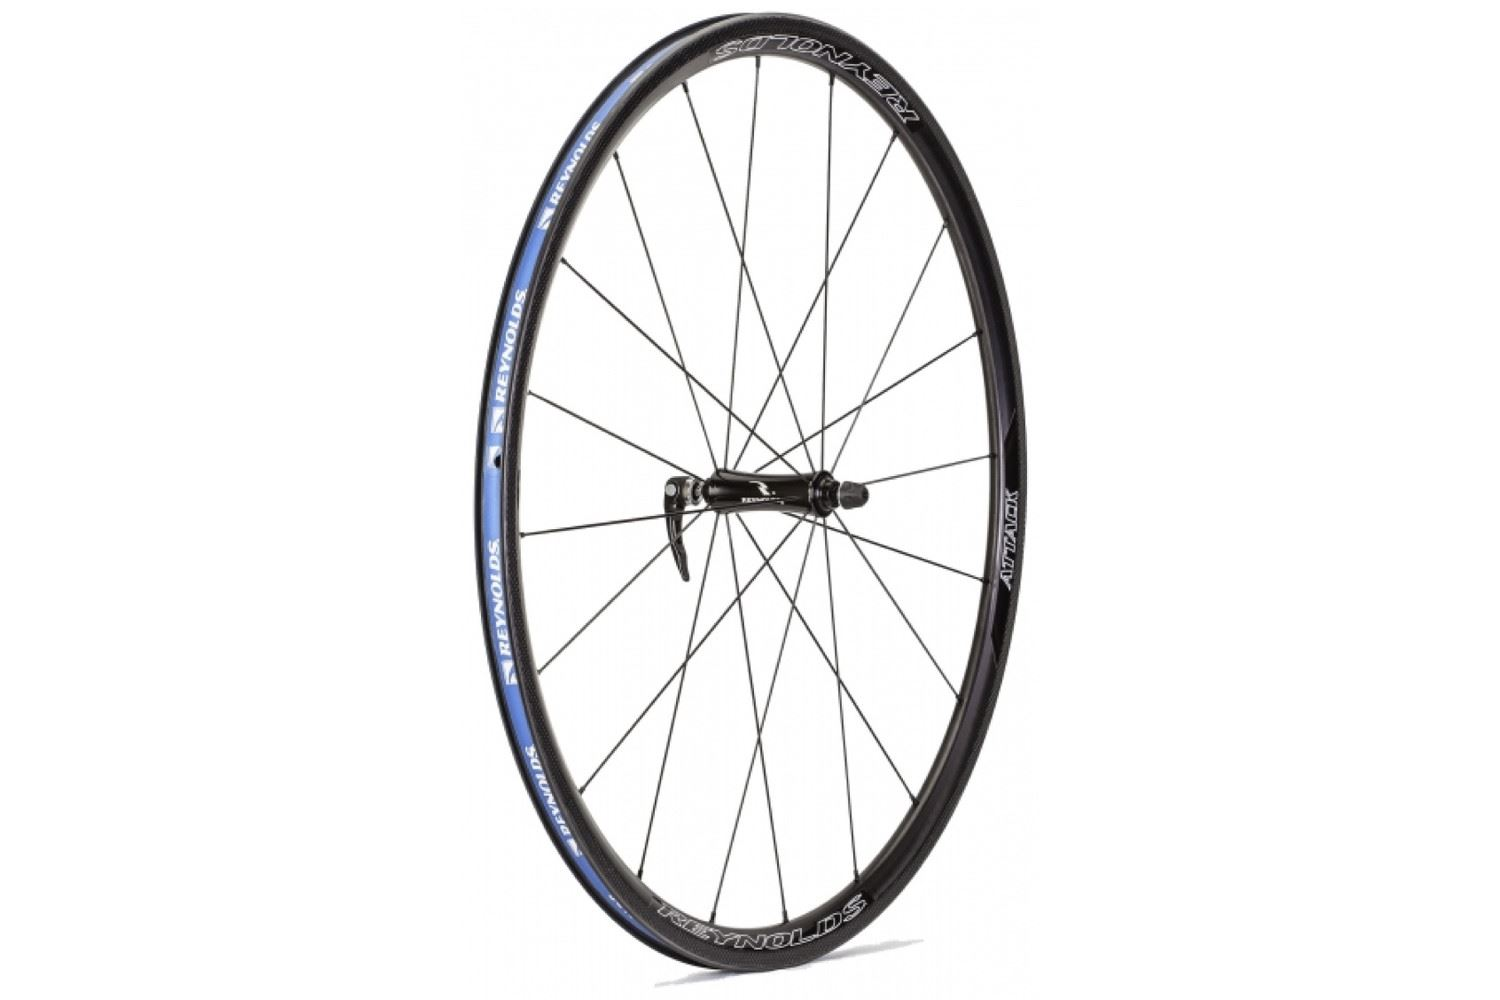 Reynolds 700c Road Wheelset Clincher 29mm